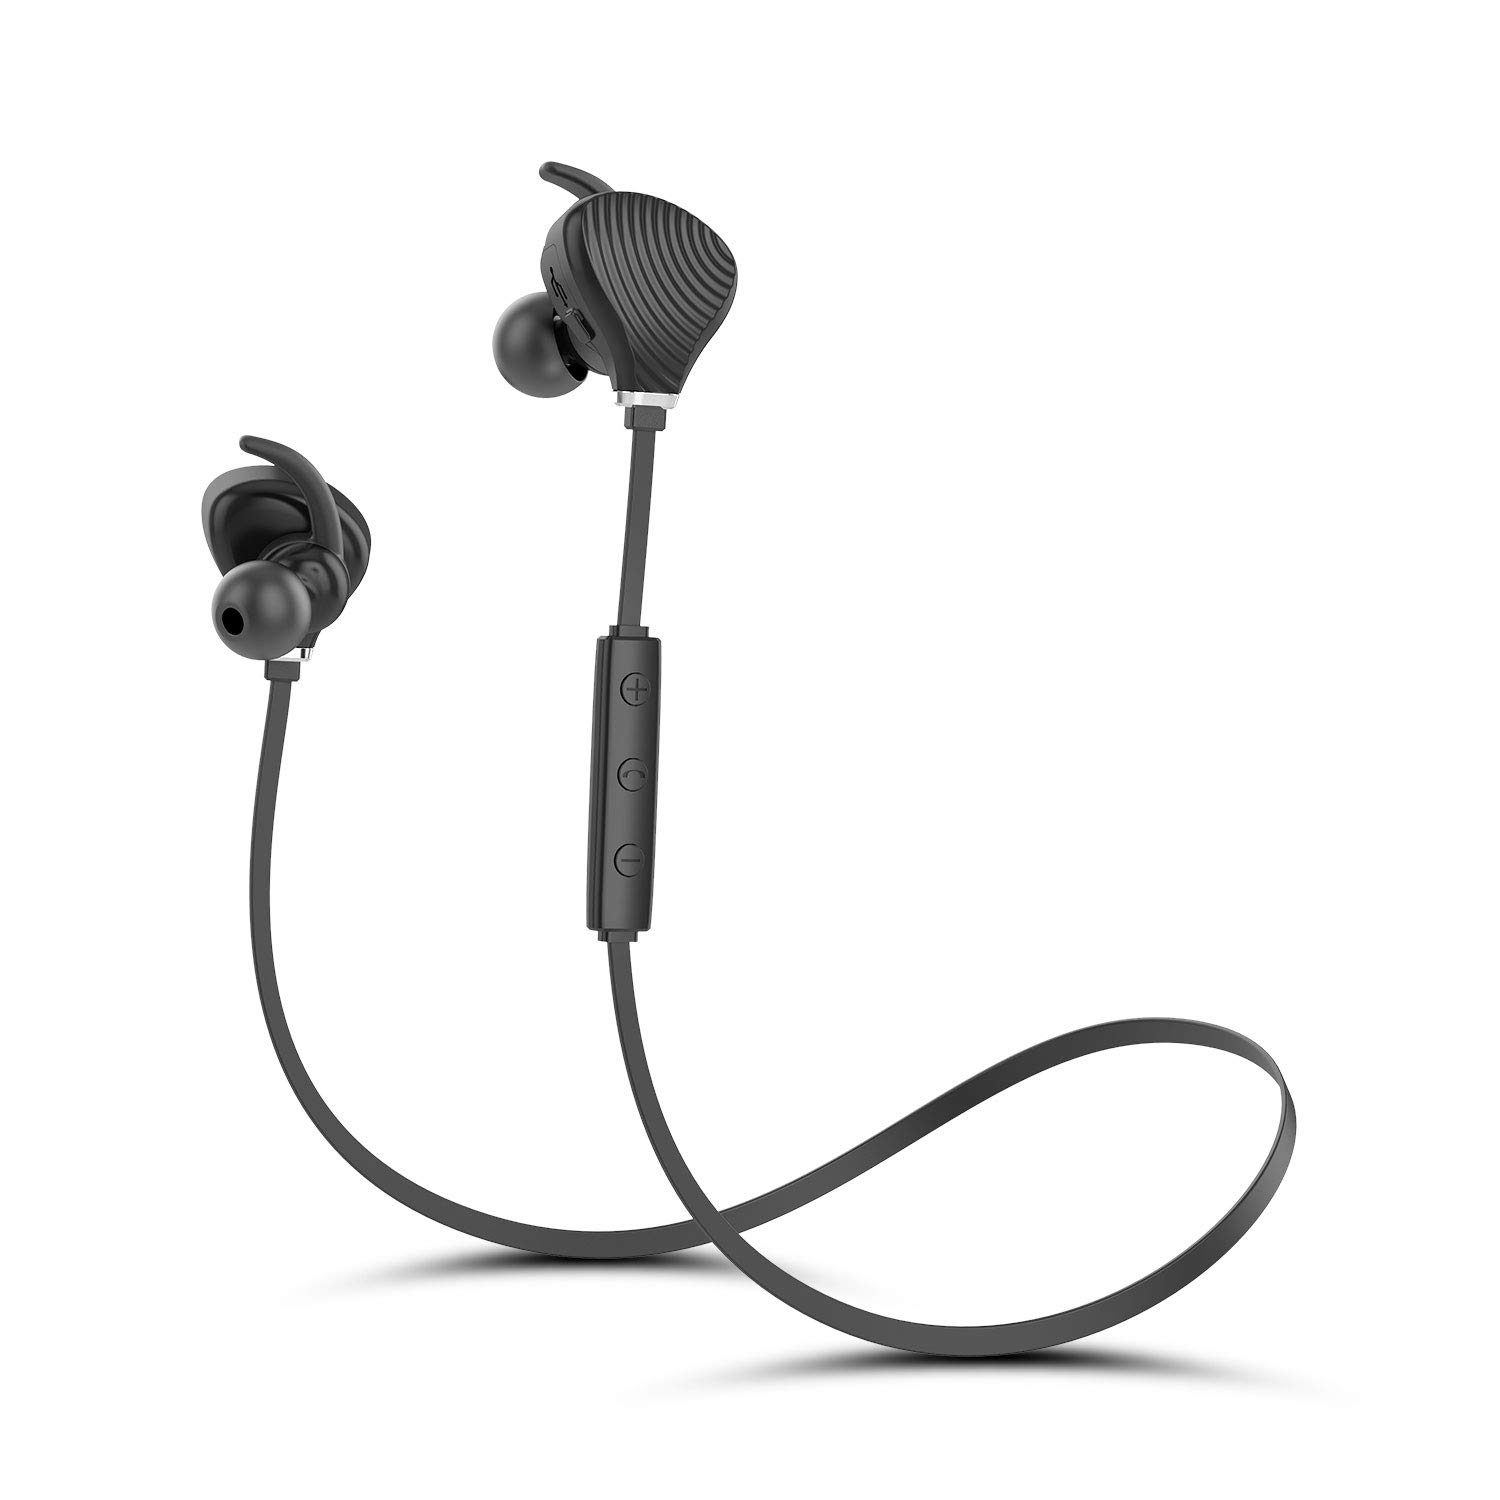 Bluetooth Headphones, Best Wireless Sports Earphones w Mic HD Stereo Sweatproof Earbuds Noise Cancelling Headsets for Gym Running Workout 8 Hour Battery Black